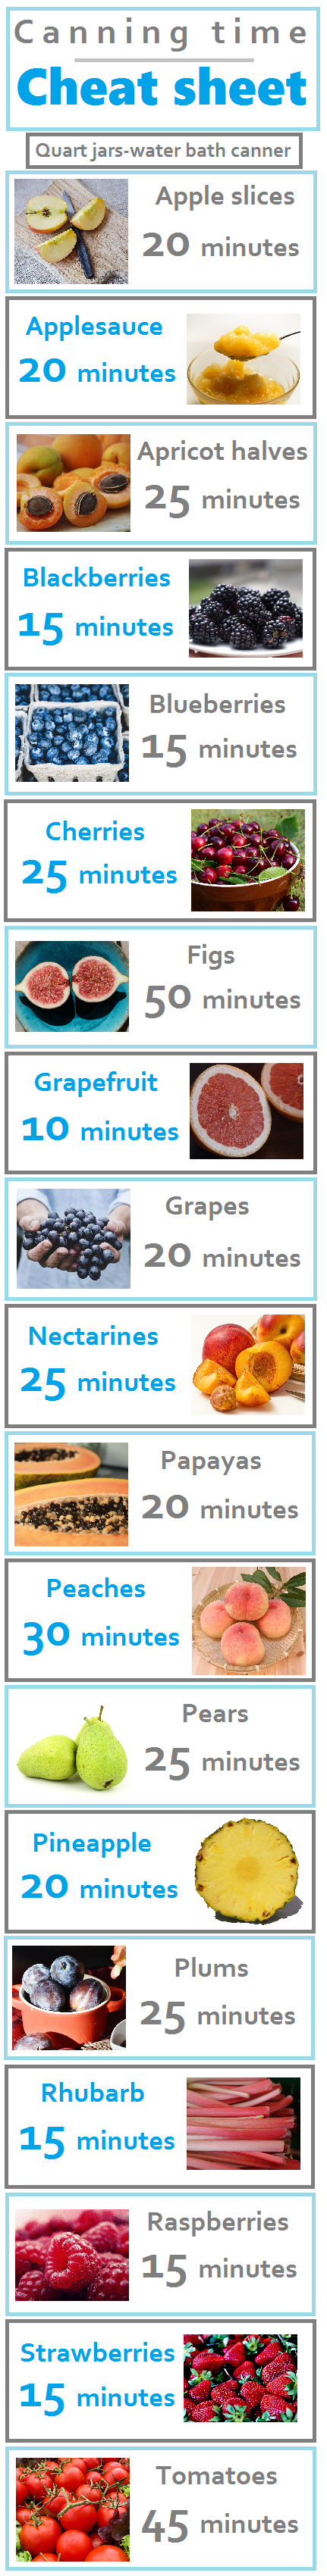 Save now for whenever I need to know processing times for canning fruit. Excellent resource!